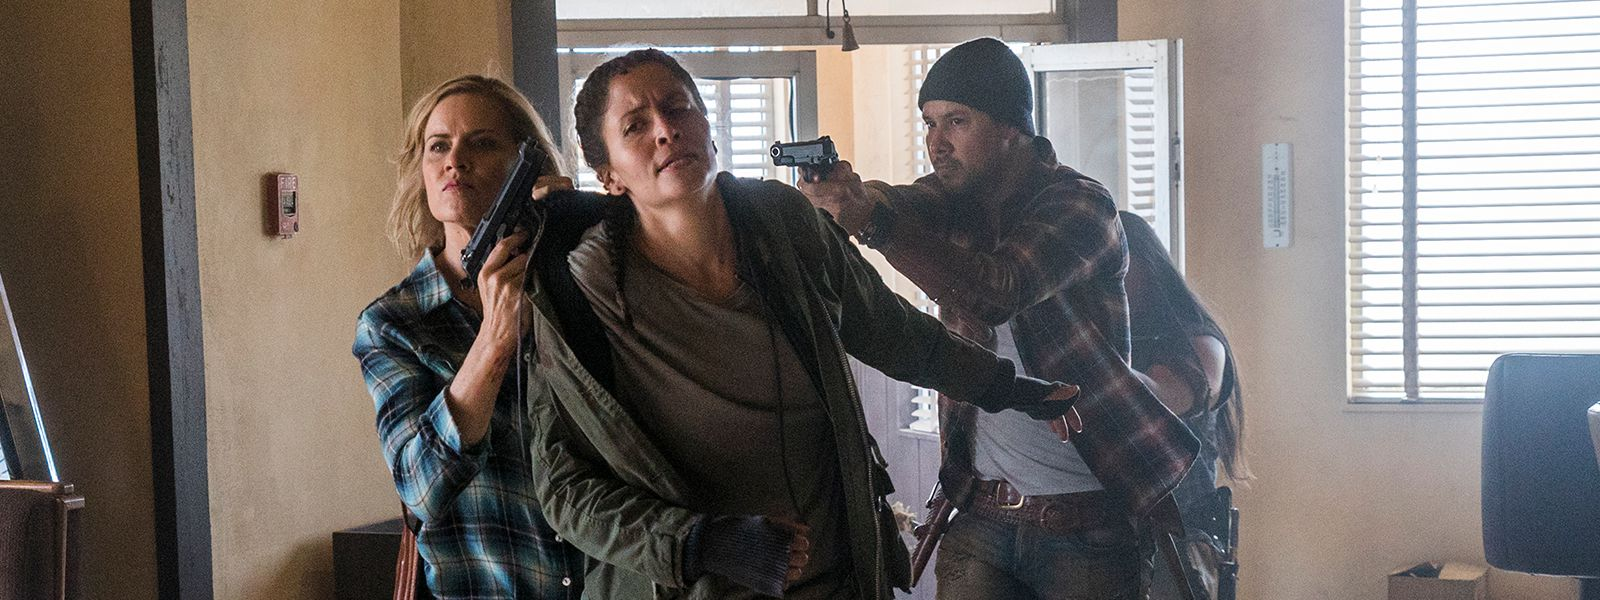 fear-the-walking-dead-episode-308-madison-dickens-ofelia-mason-post-800×600